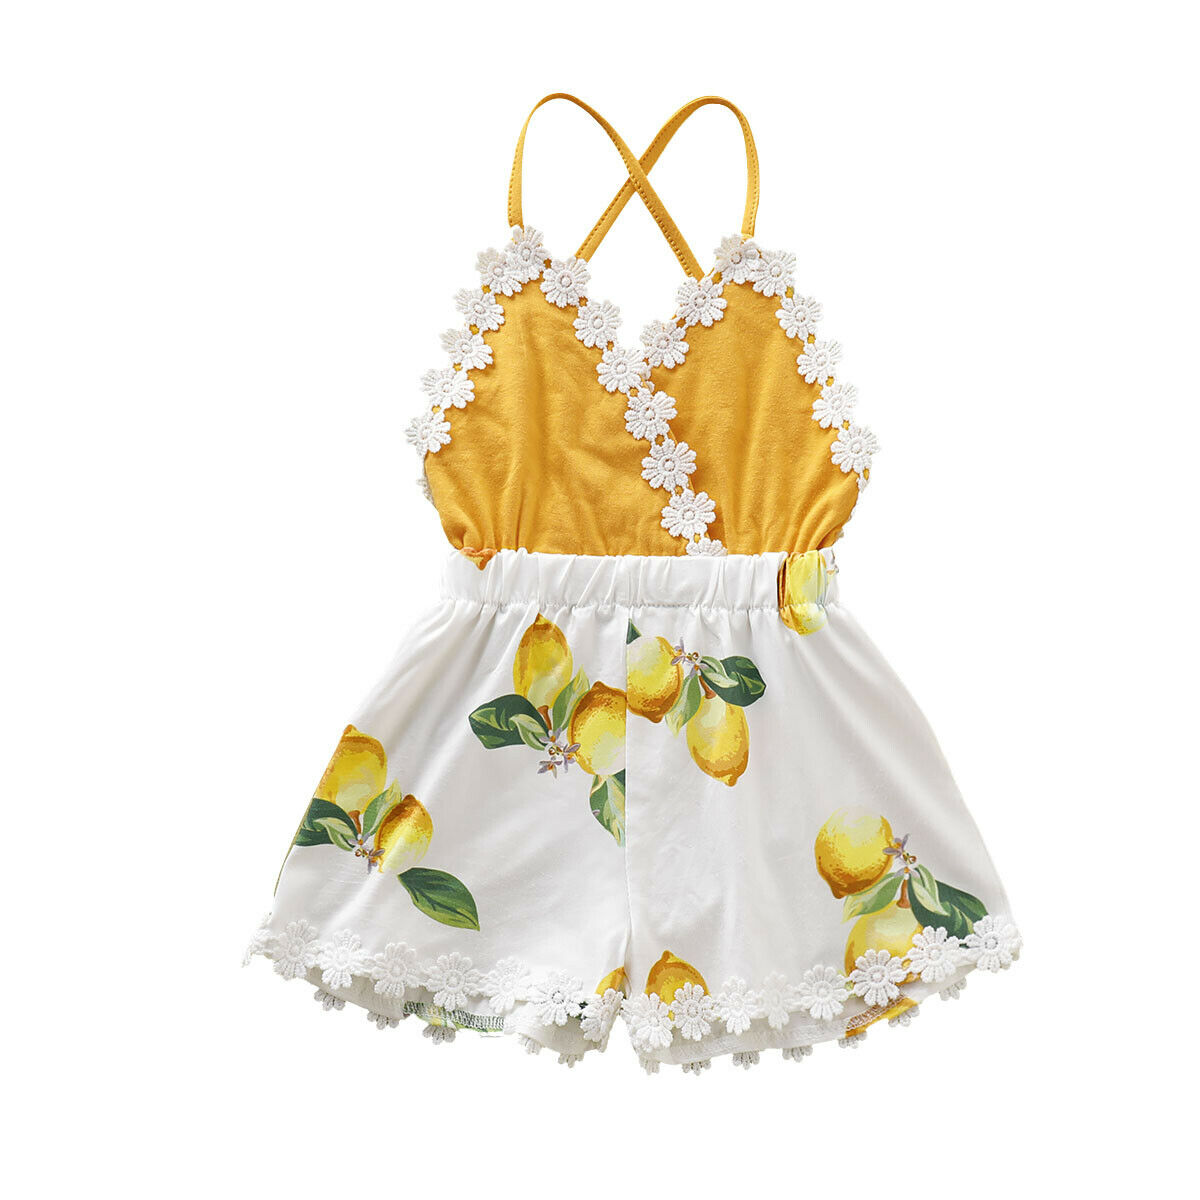 a8057d34f6bc2 0-4Y Summer Infant Kids Baby Girl Strap Romper Floral Print Lace Sleeveless  Belt Jumpsuits